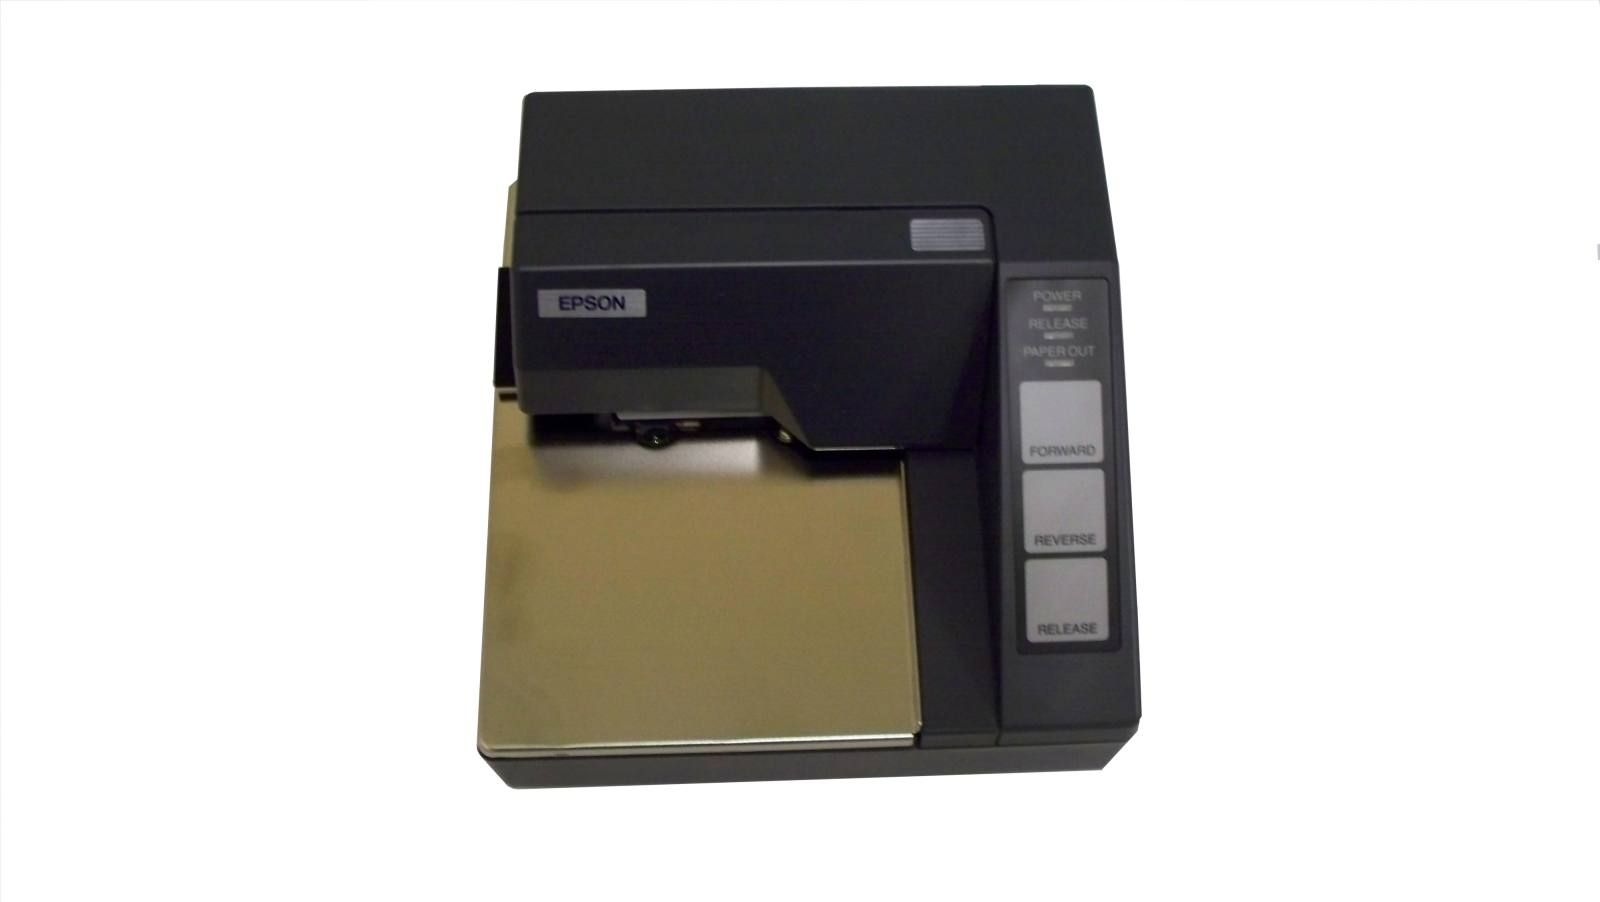 T - Epson TMU295 Ticket/Slip Weighbridge printer